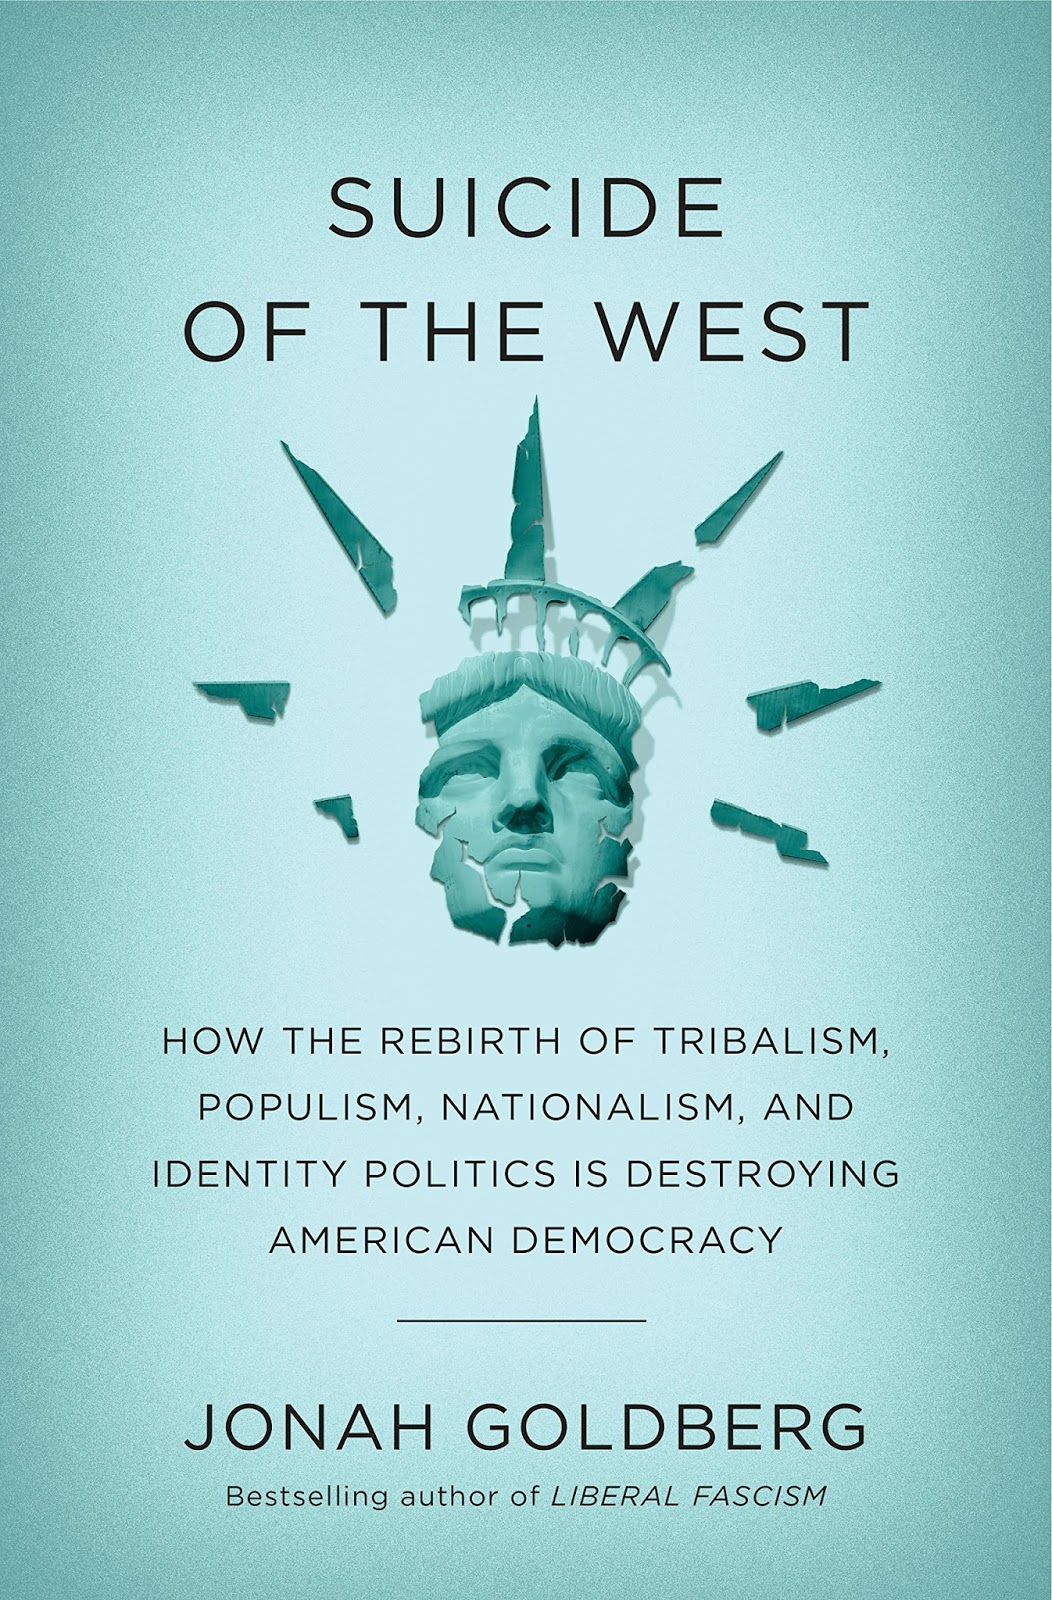 dac25522 Jonah Goldberg, Suicide of the West